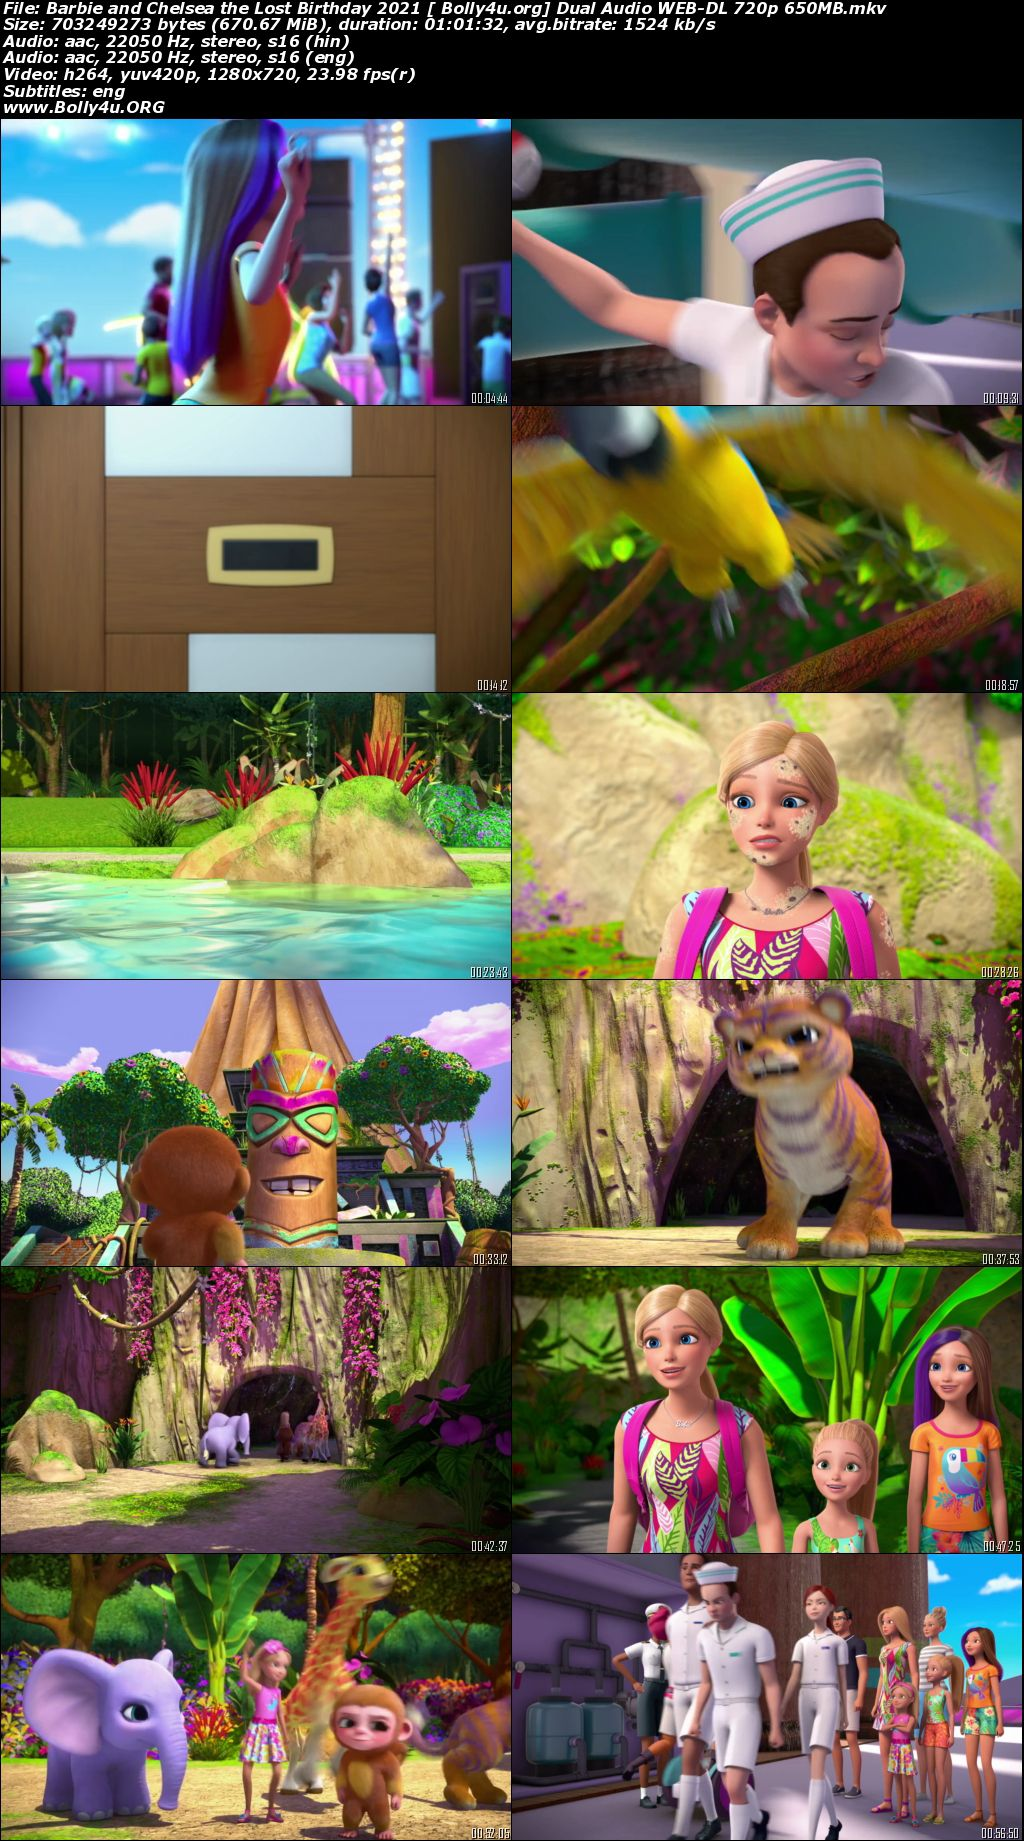 Barbie and Chelsea the Lost Birthday 2021 WEB-DL 650MB Hindi Dual Audio 720p Download